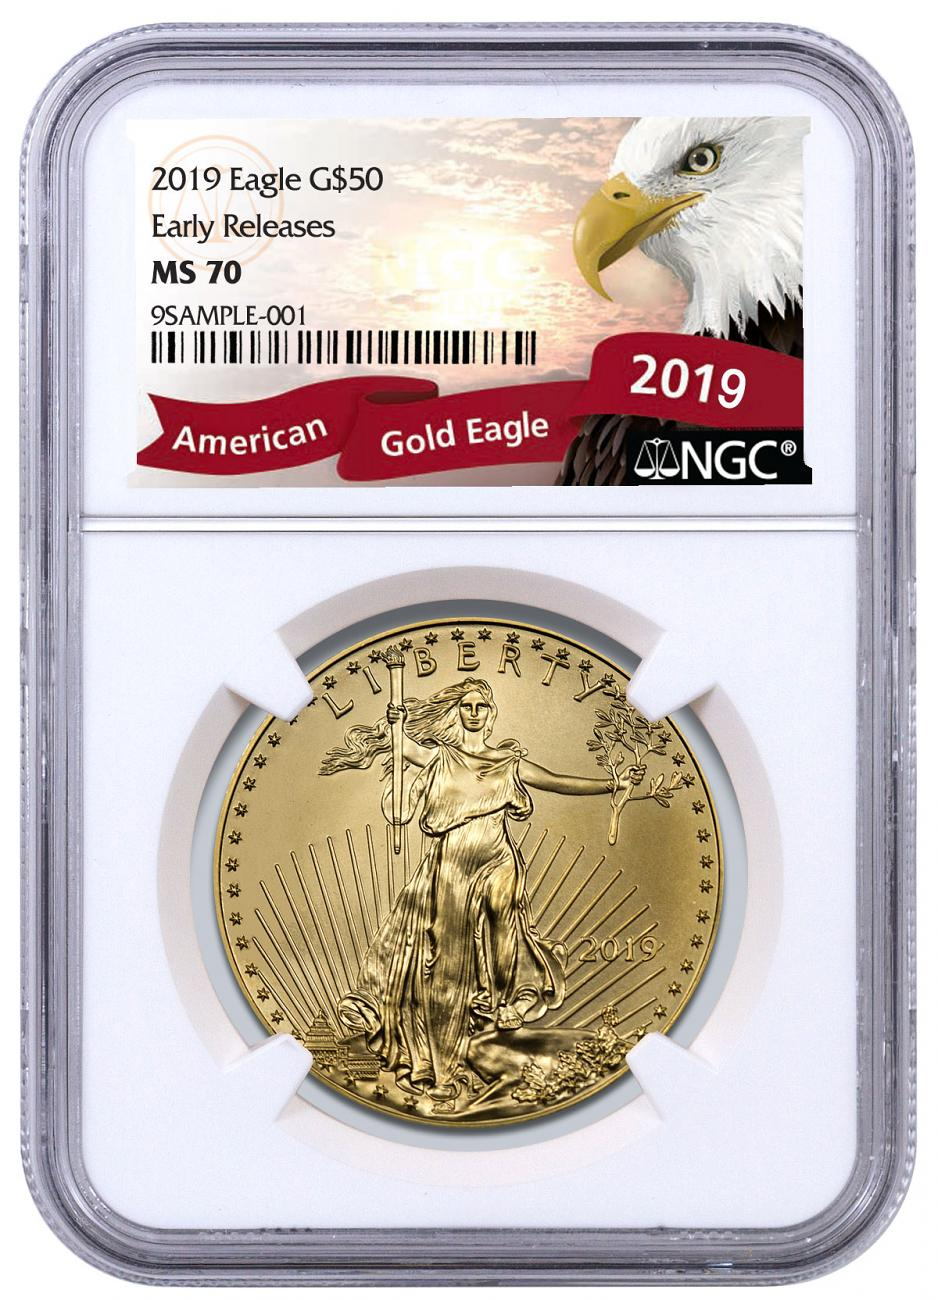 2019 1 oz Gold American Eagle $50 NGC MS70 ER Exclusive Eagle Label